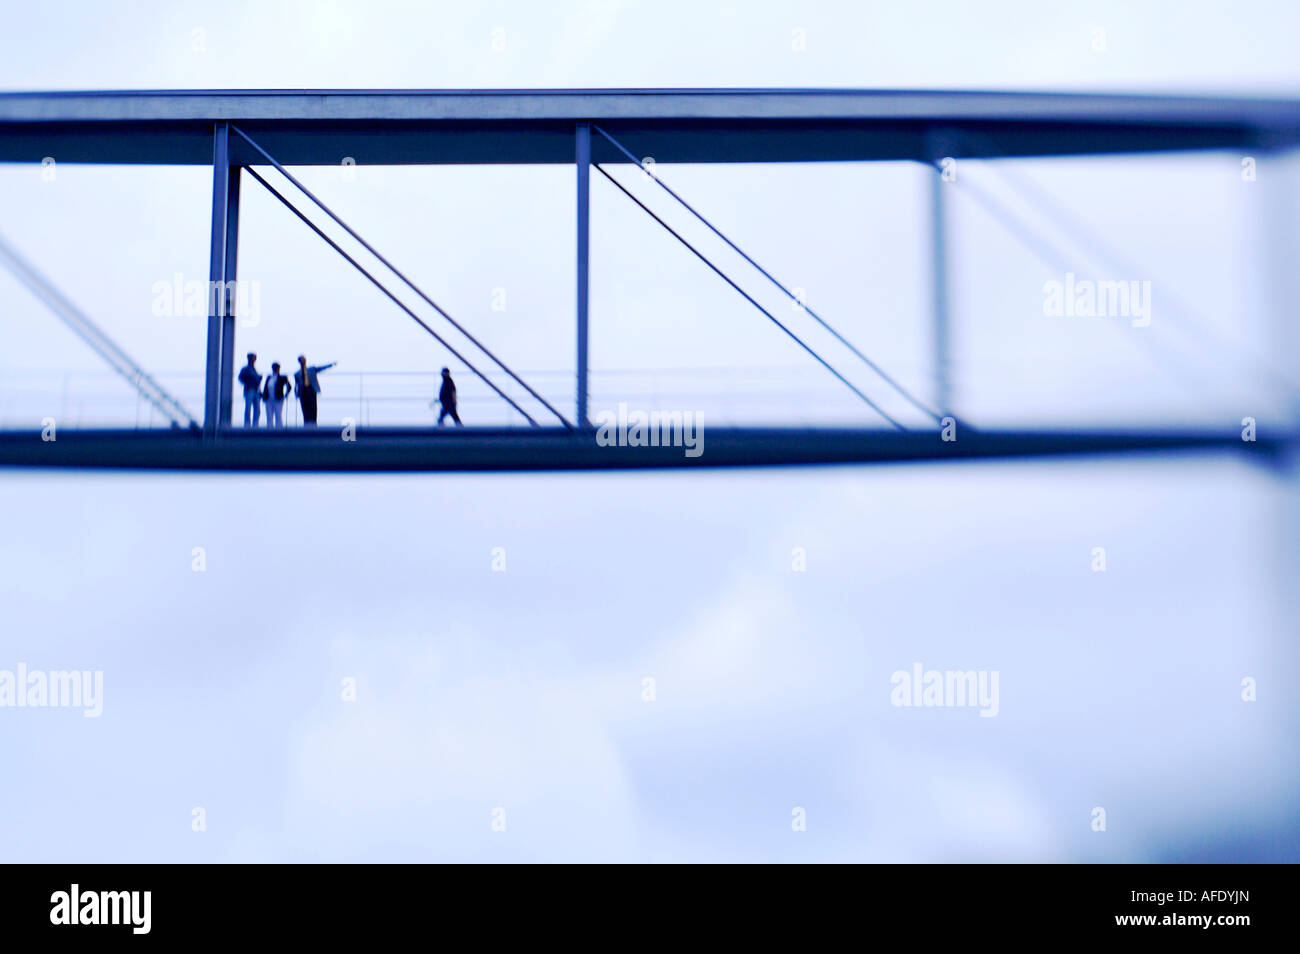 Germany, Berlin, bridge for members of the Bundestag - Stock Image